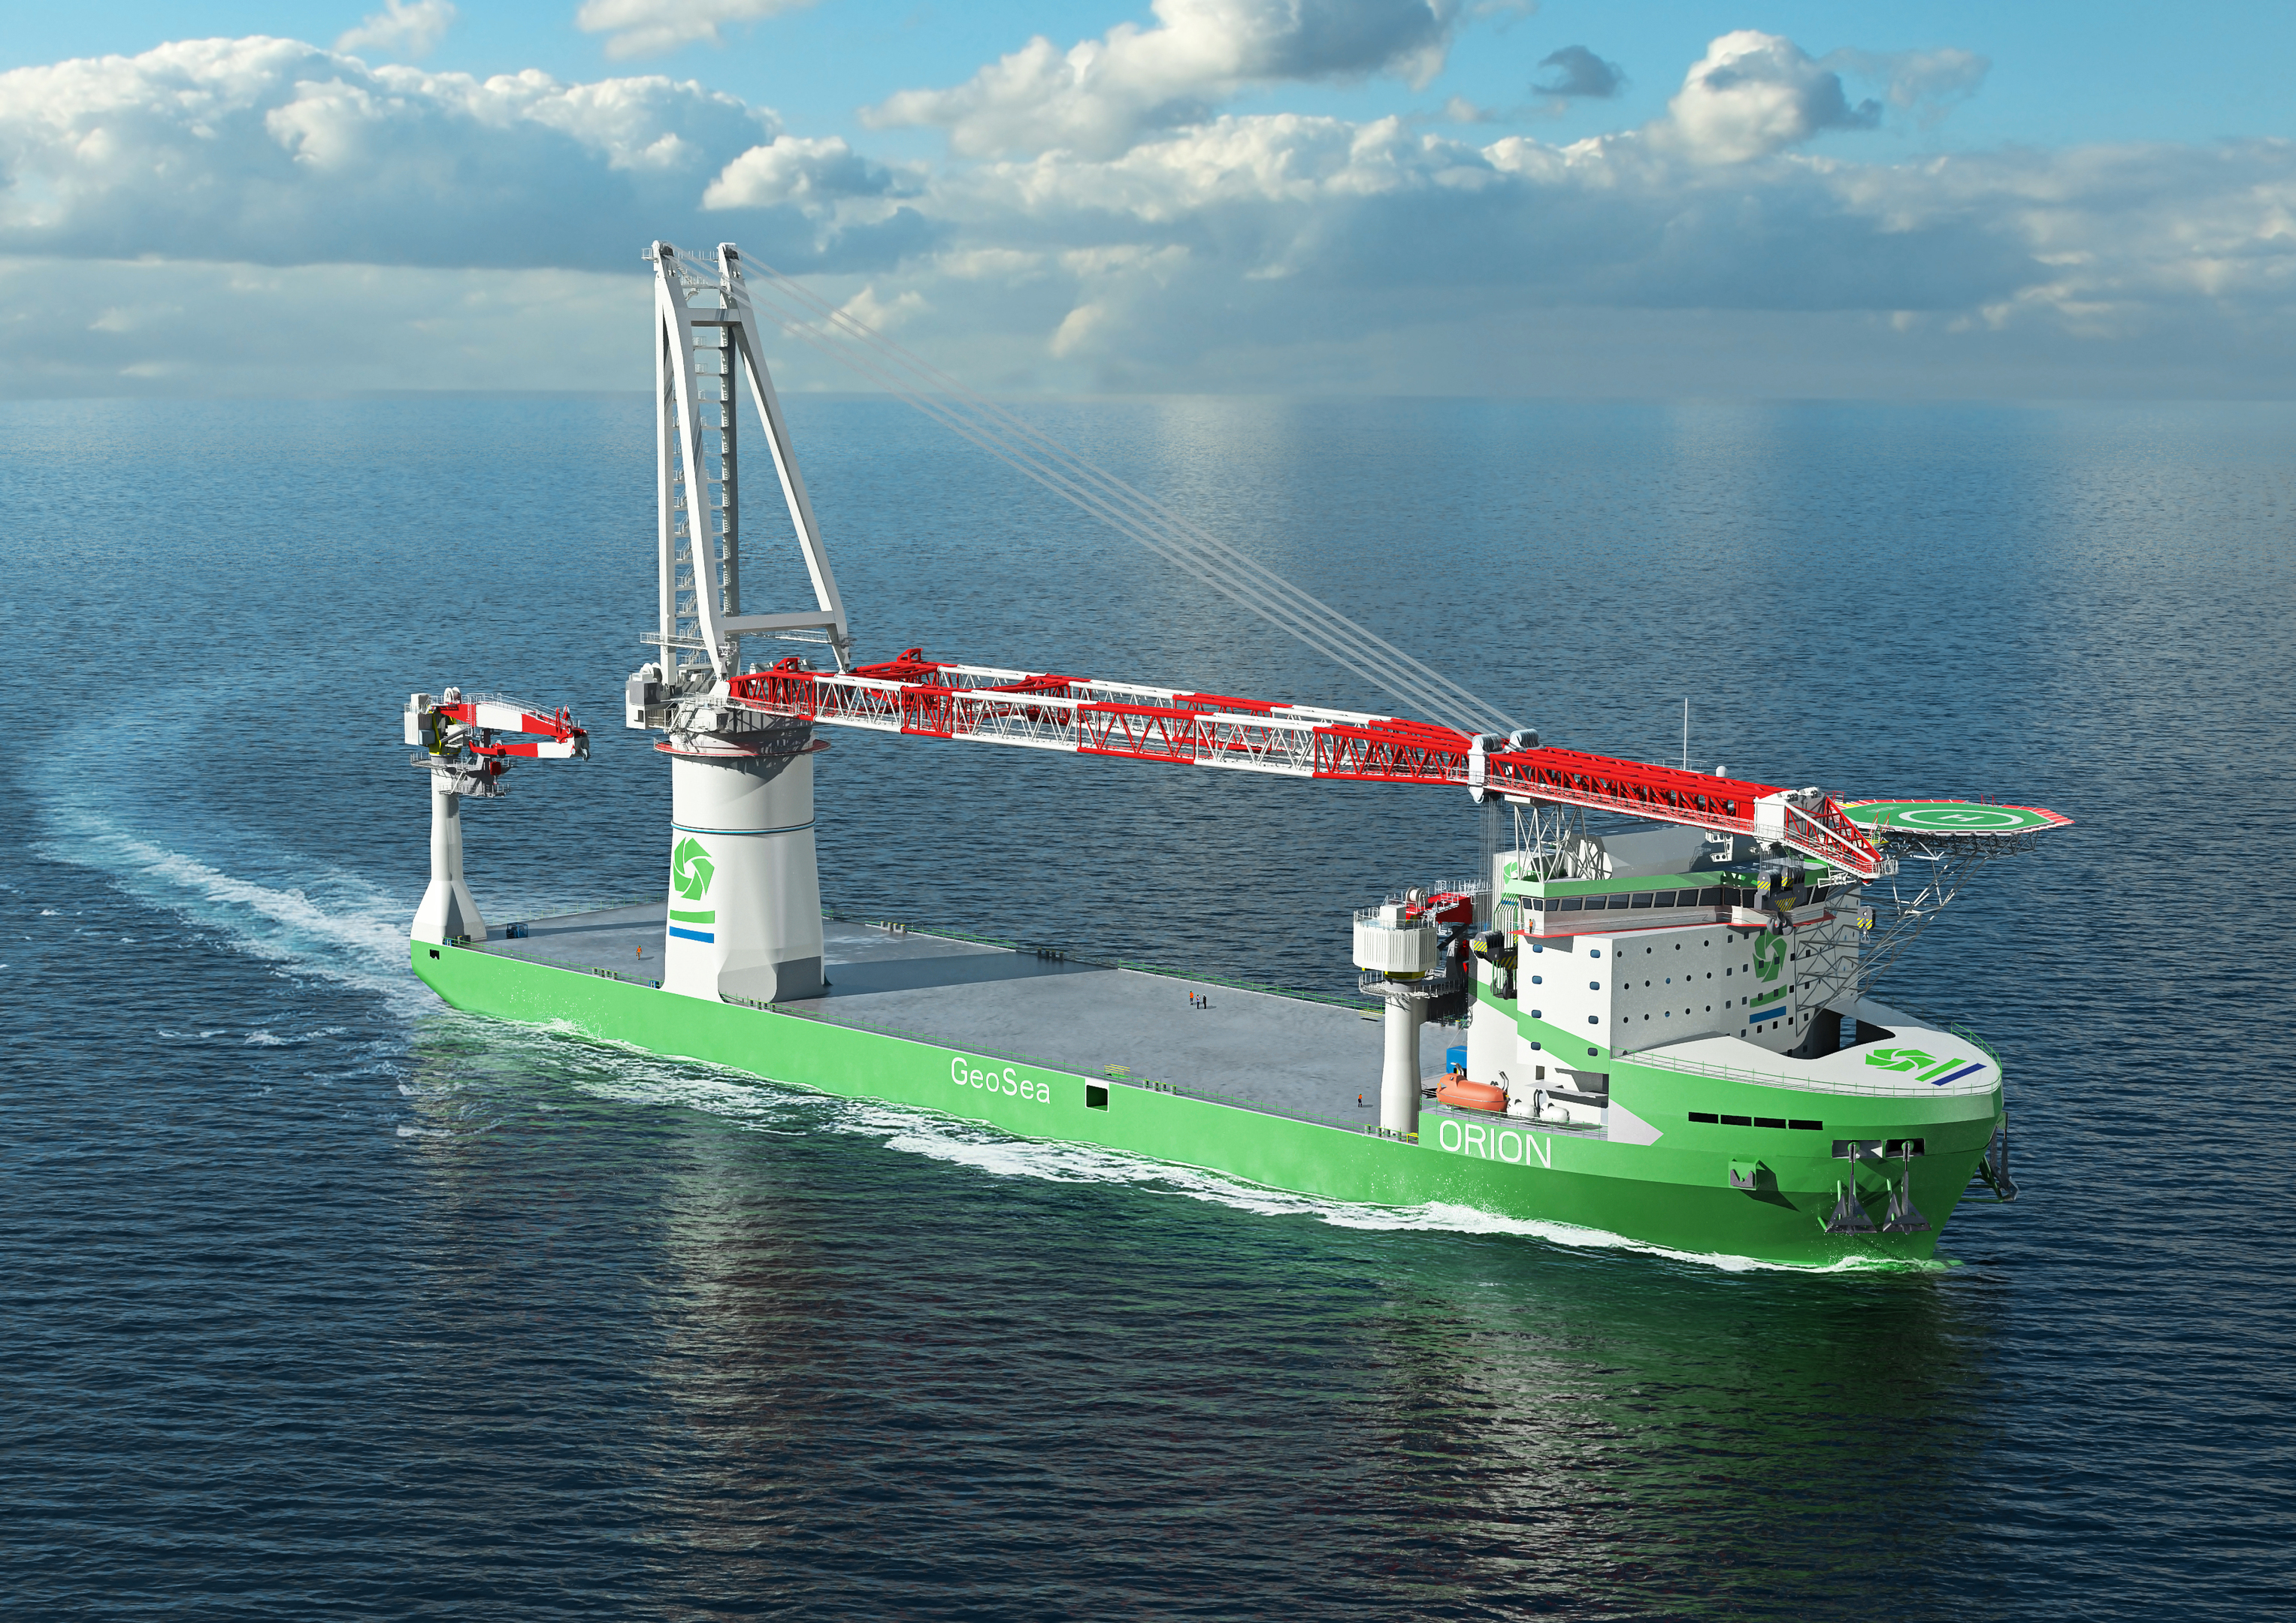 The world's first LNG fuelled offshore construction vessel being built for DEME will be powered by Wartsila.